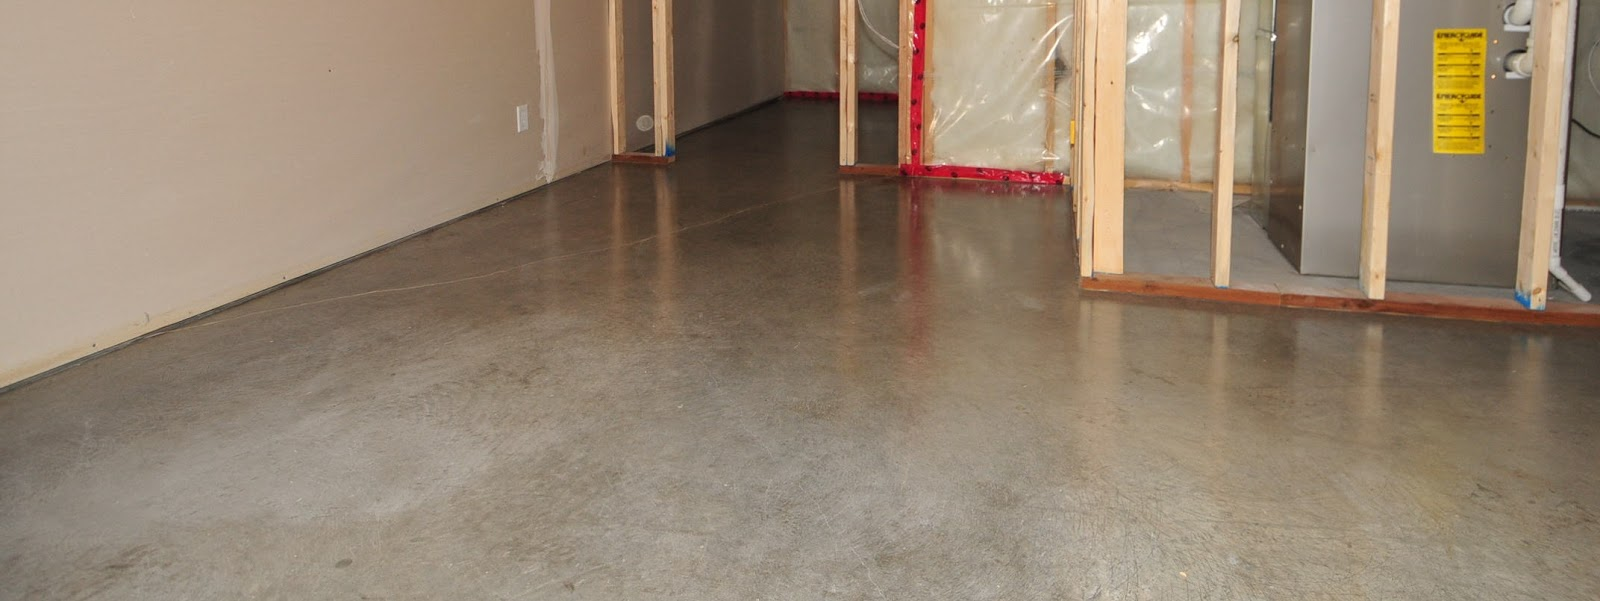 Mode concrete cool and modern basement concrete floors for Concrete basement floor